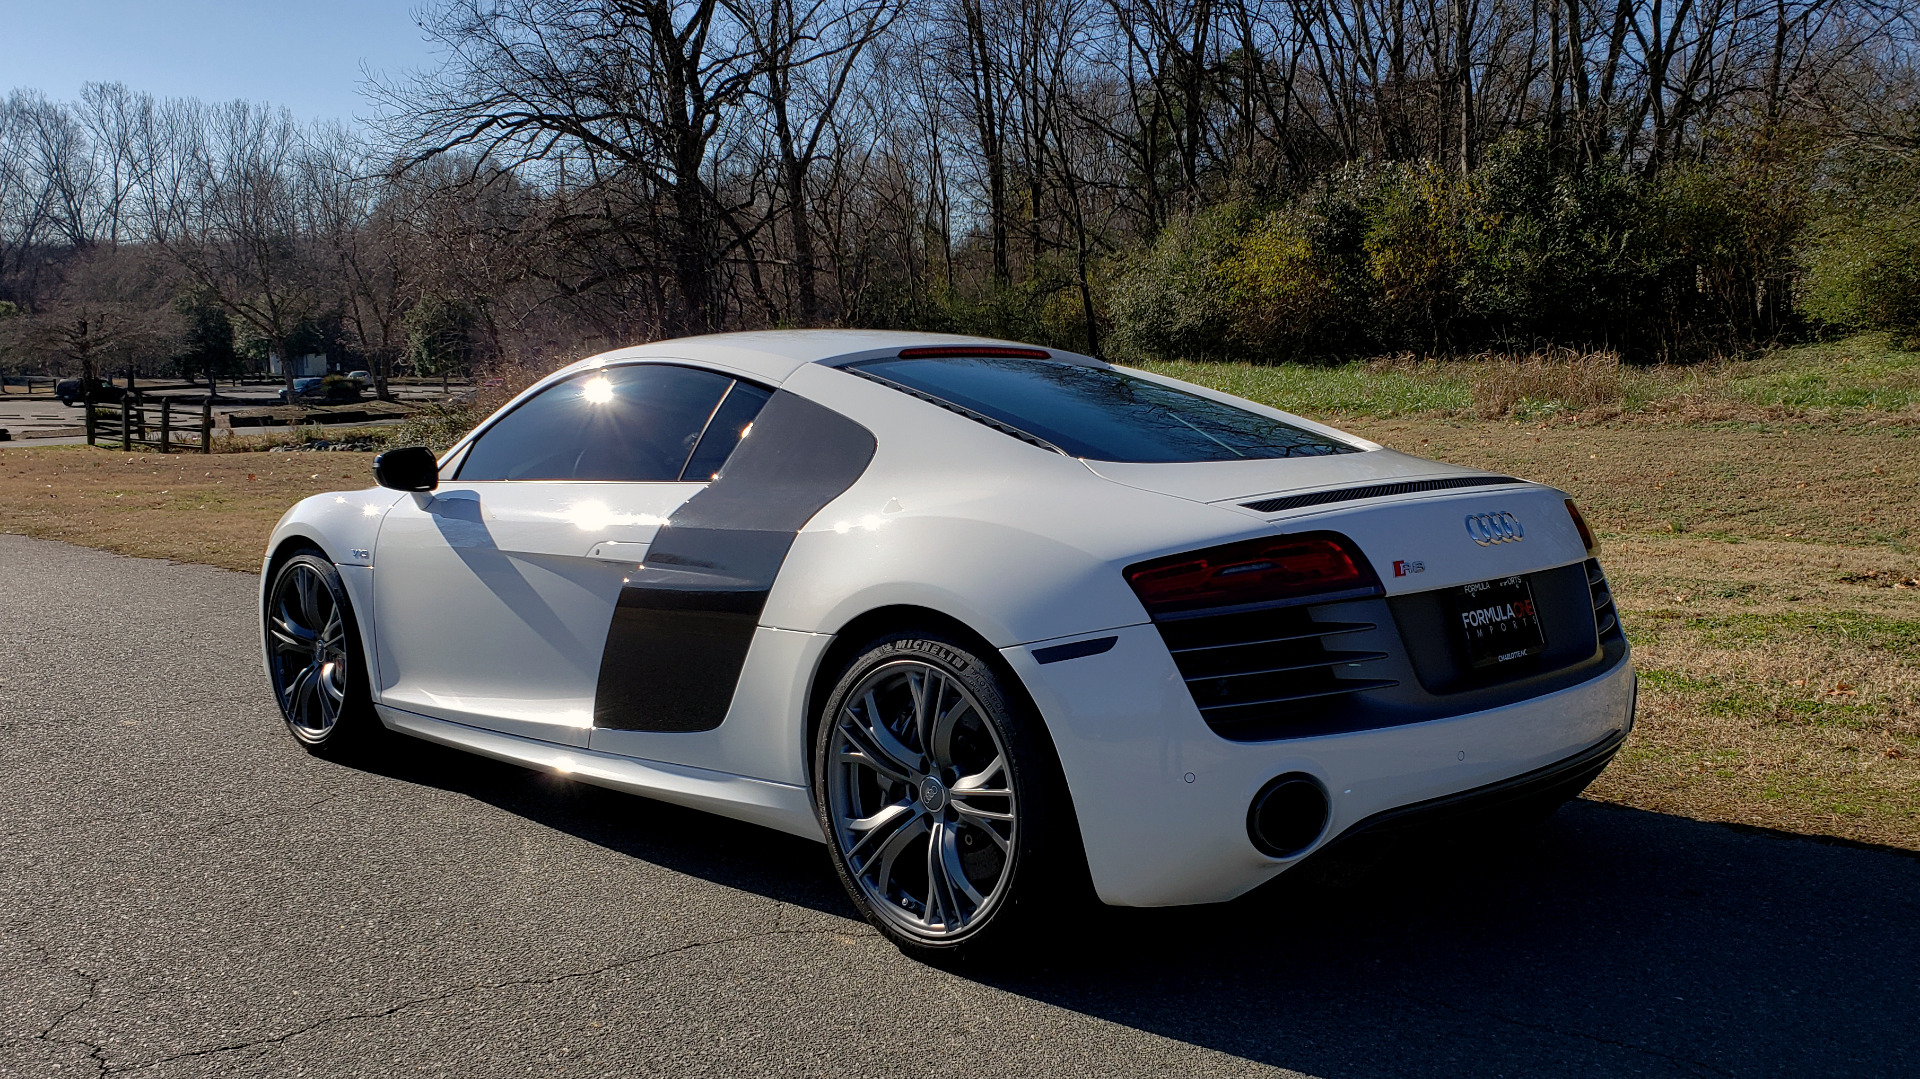 Used 2015 Audi R8 V10 PLUS / S-TRONIC / B&O SOUND / SPORT EXH / REARVIEW for sale Sold at Formula Imports in Charlotte NC 28227 4